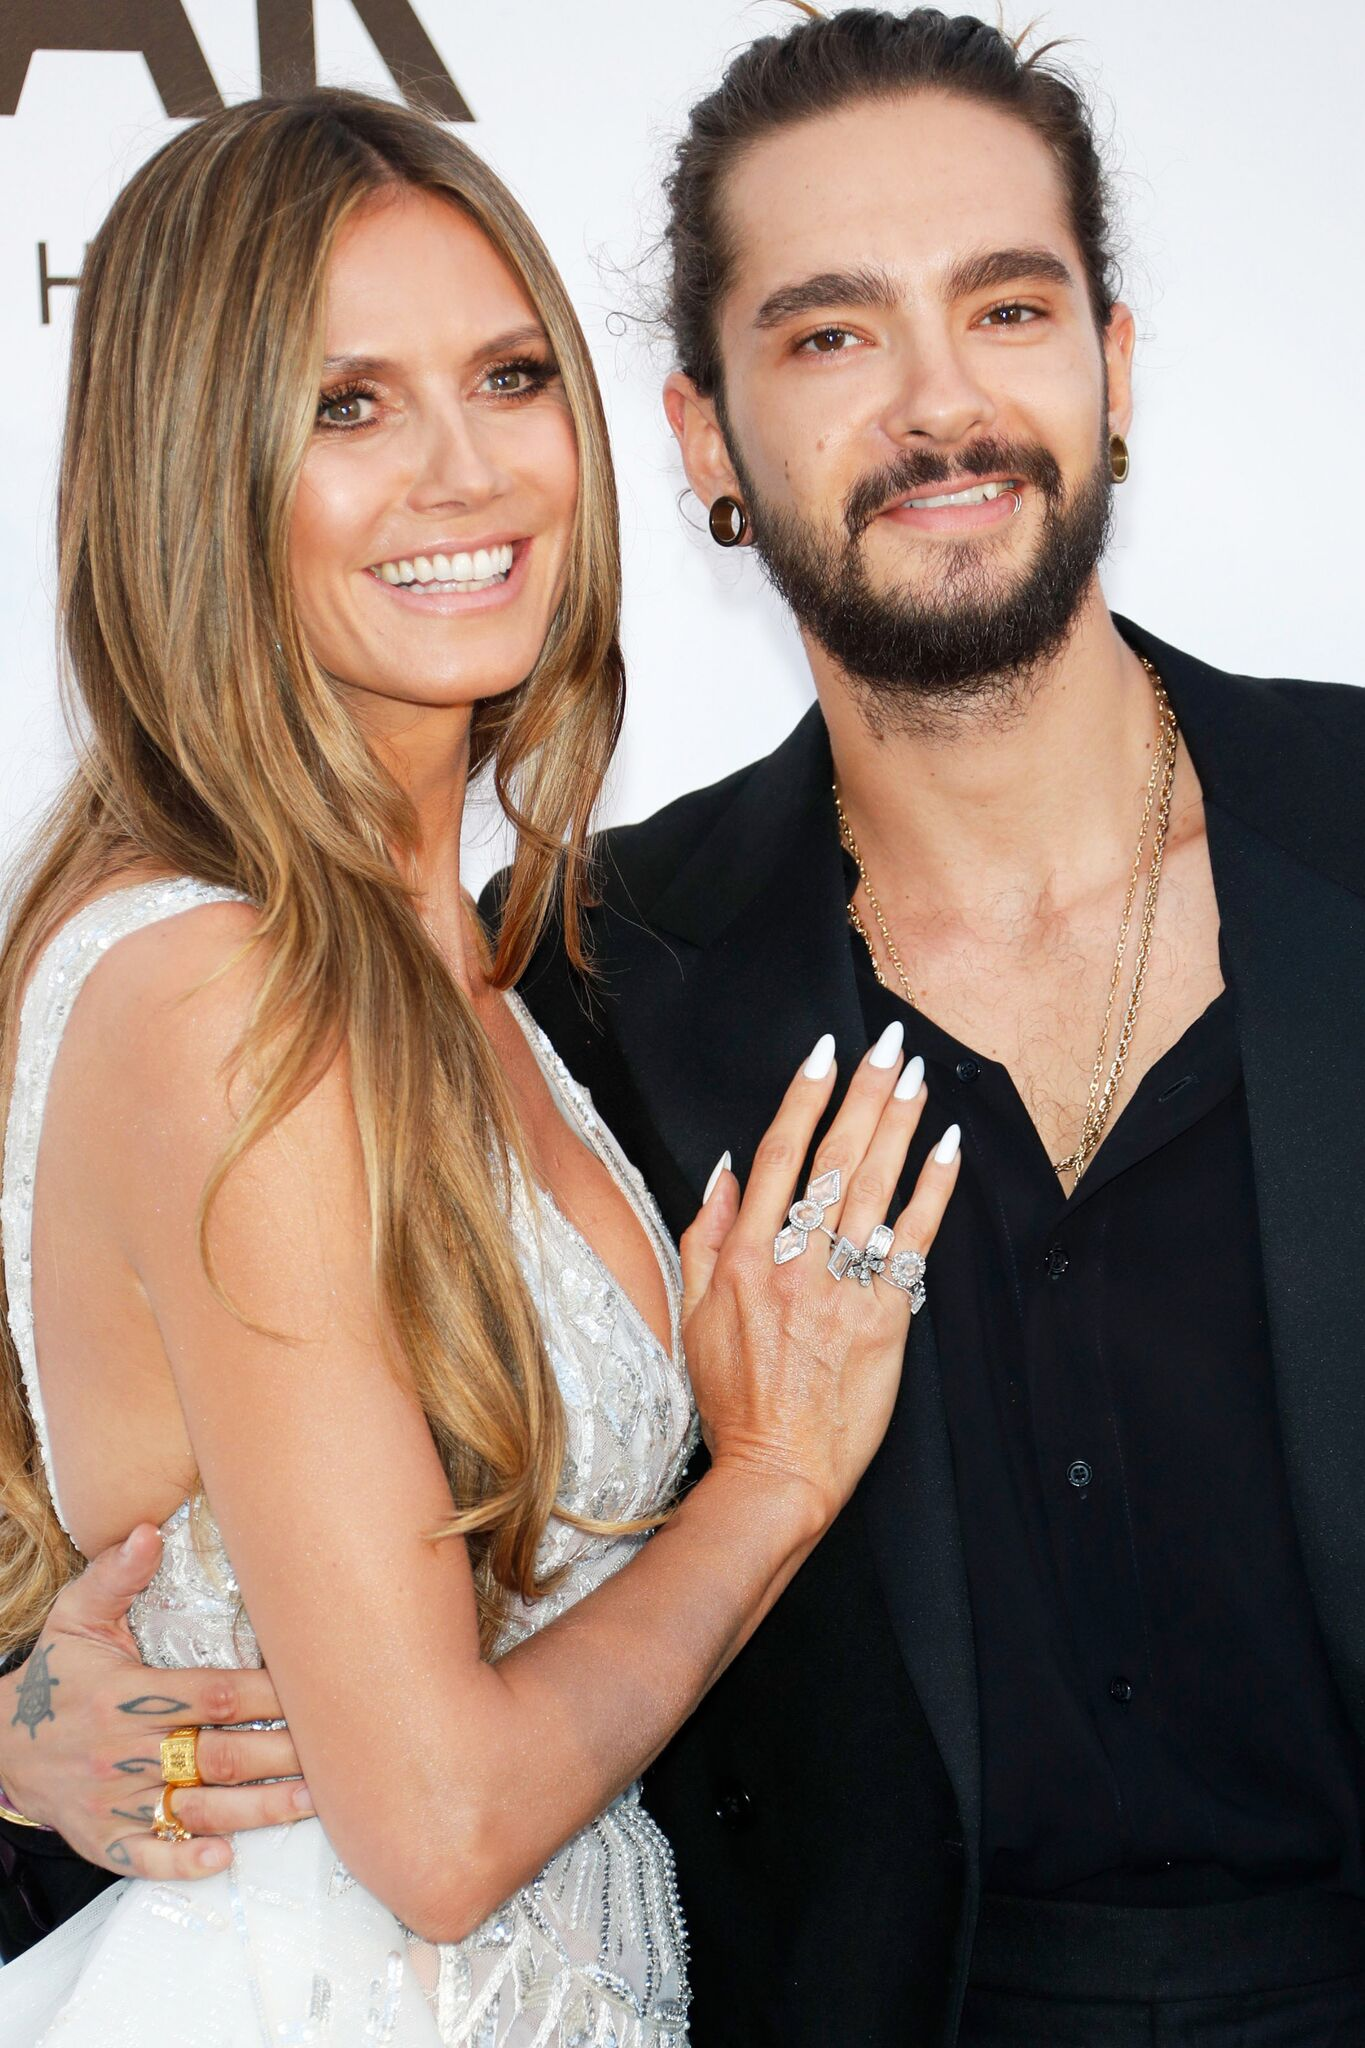 Heidi Klum and Tom Kaulitz arrive at the amfAR Gala Cannes 2018 at Hotel du Cap-Eden-Roc | Source: Getty Images